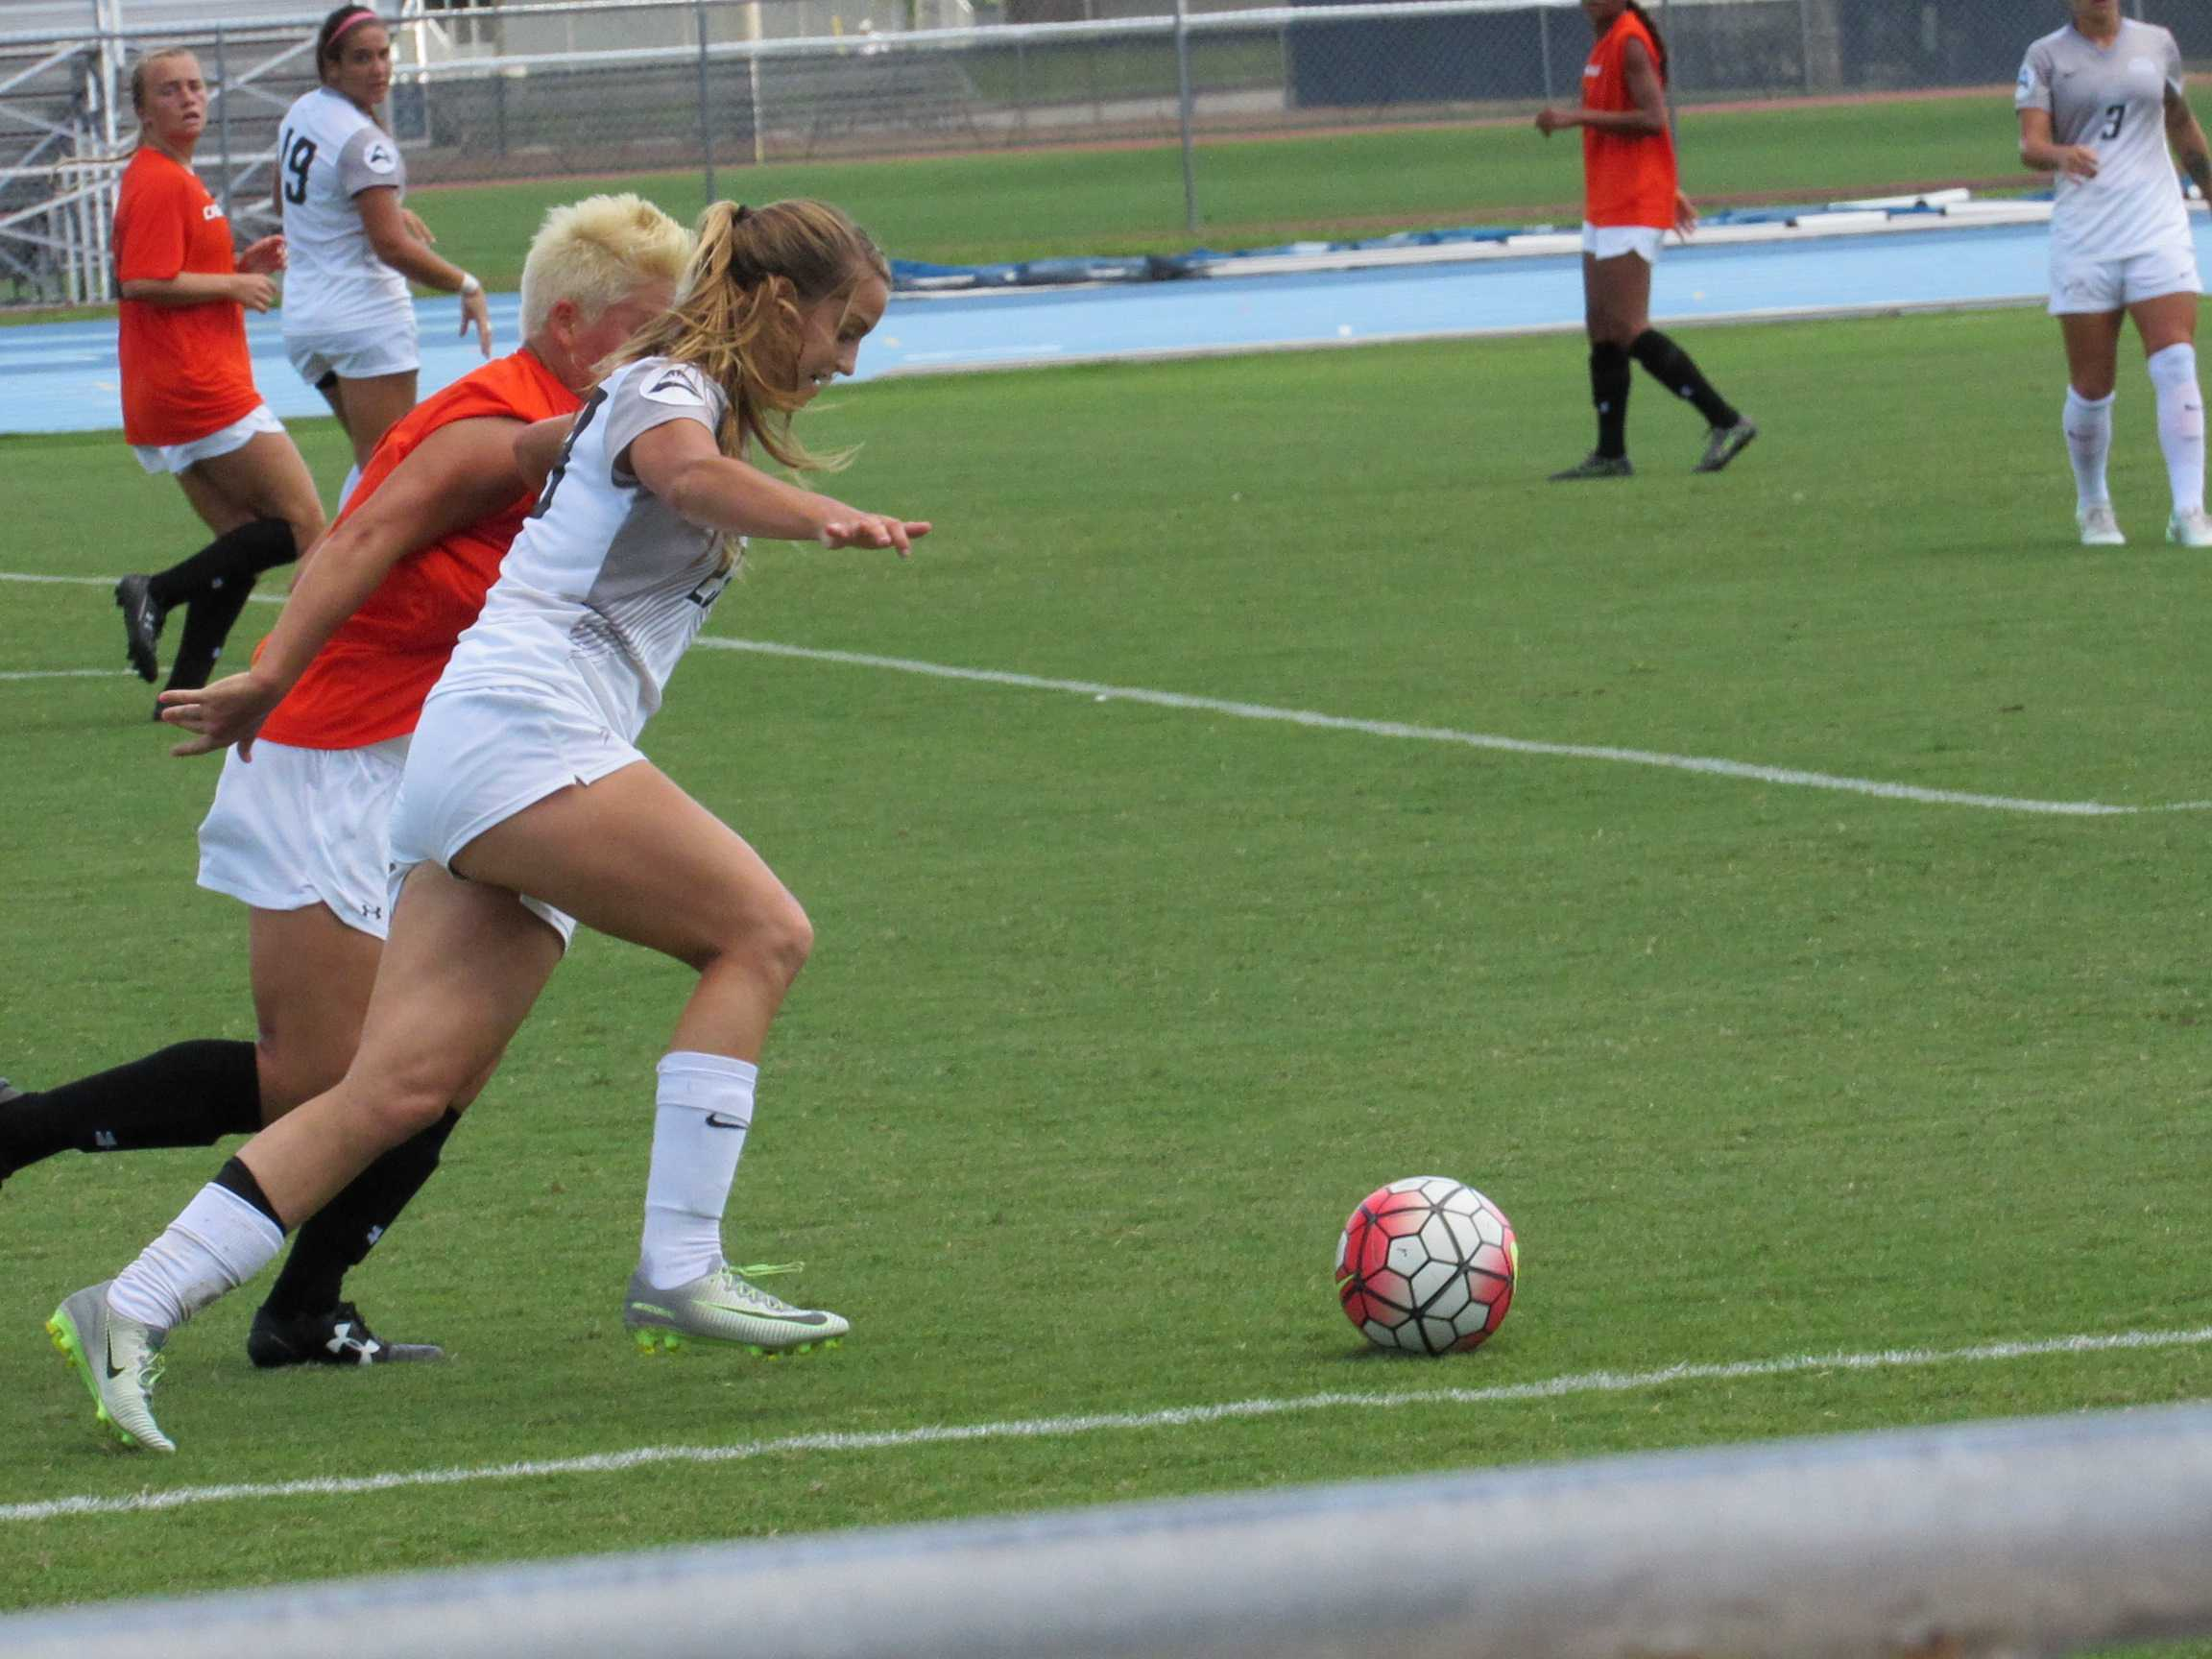 Ospreys win in overtime with a header